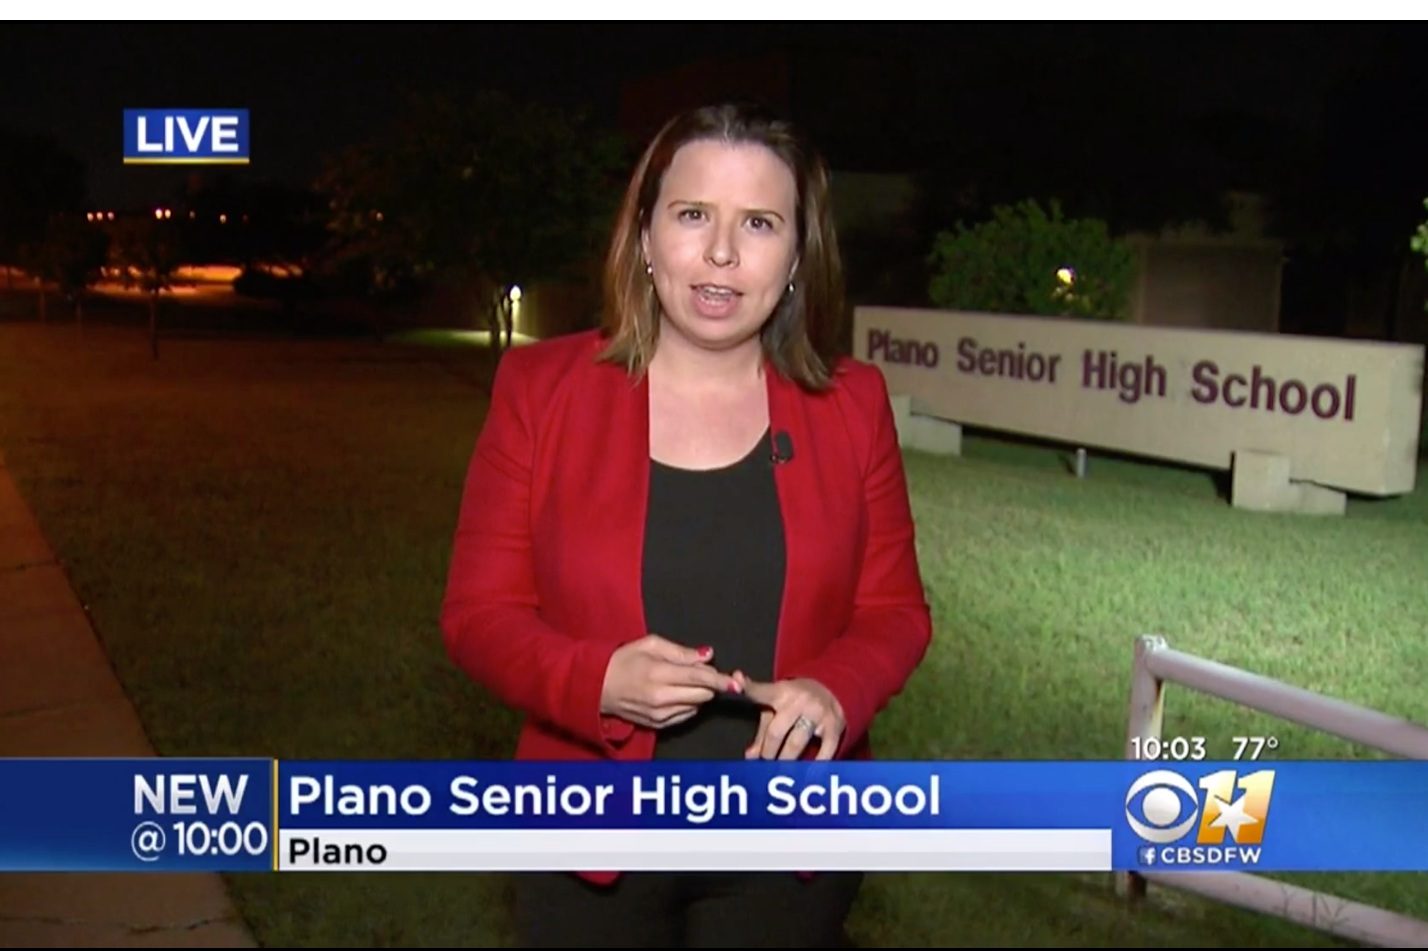 Third Suicide Of Year Casts Shadow At Plano Senior High